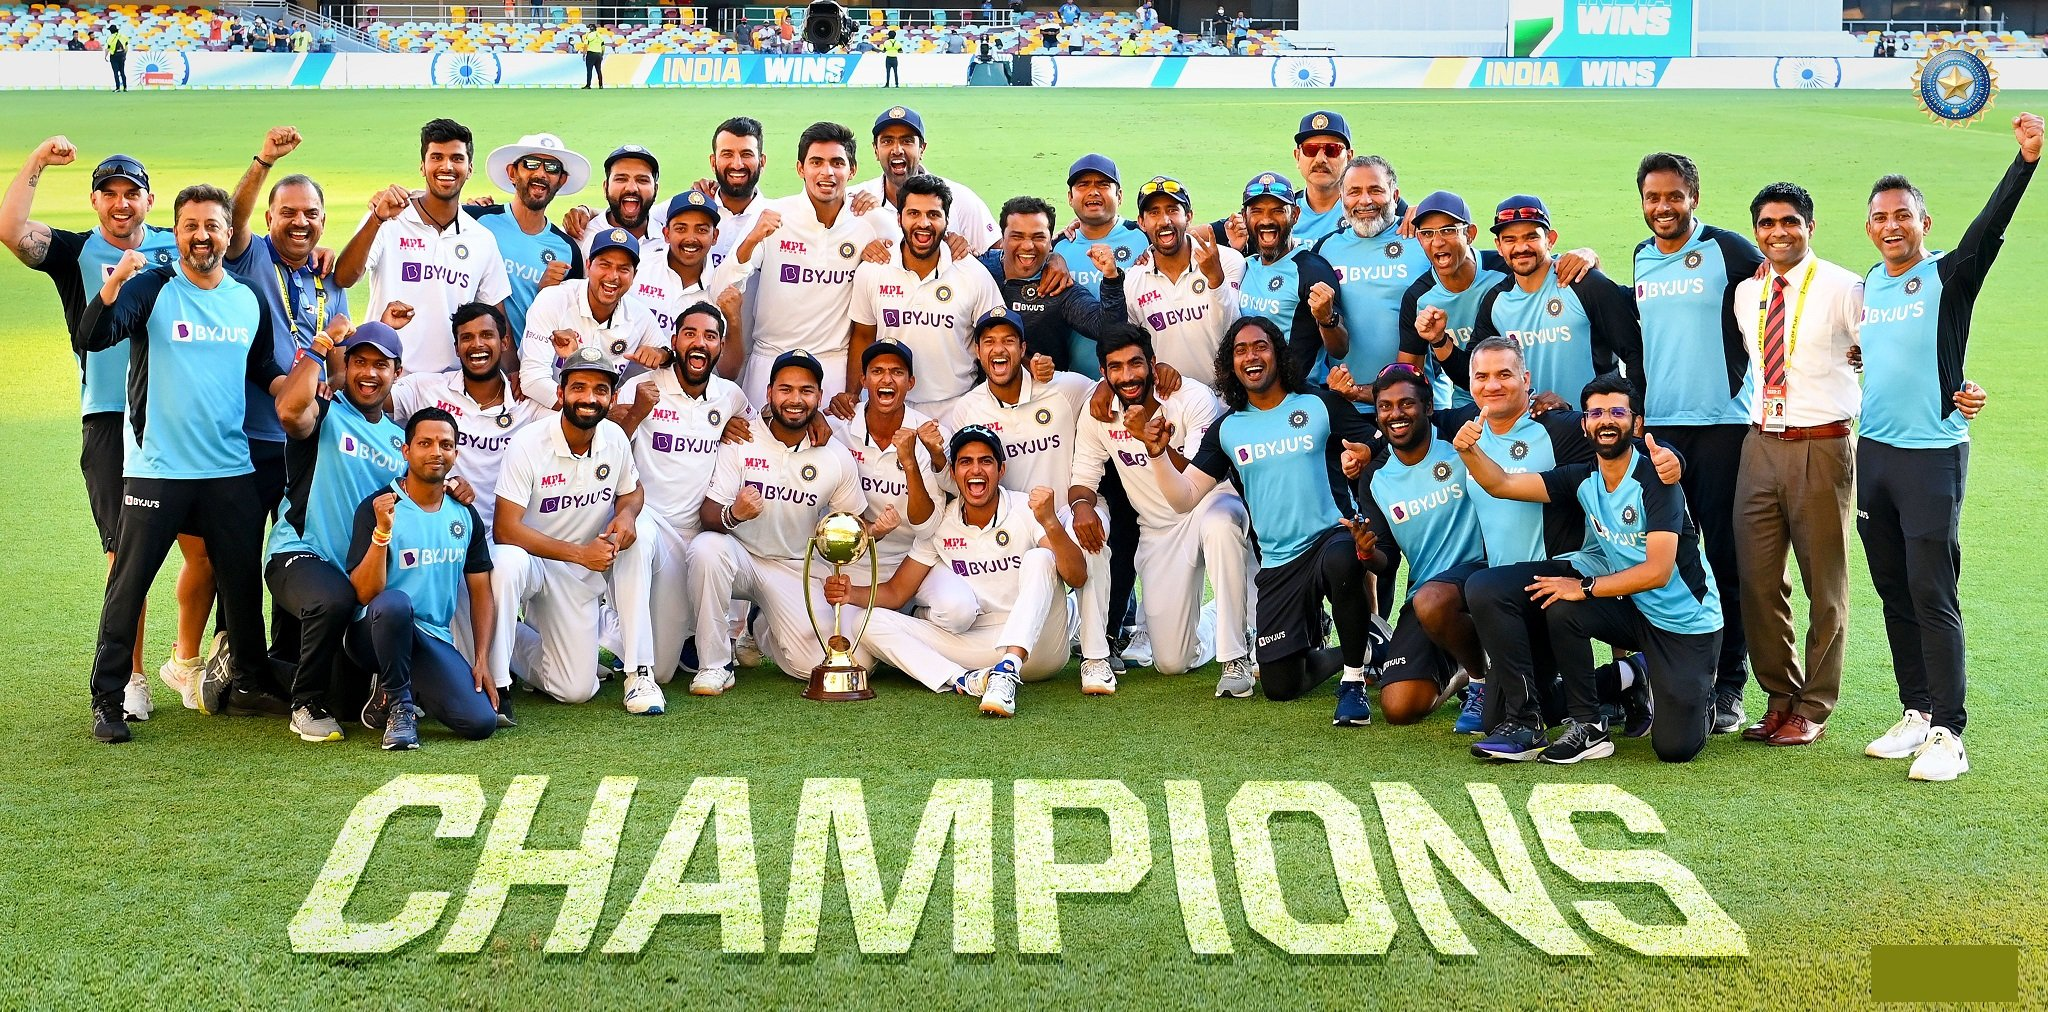 Young Team India Conquers Gabba by Defeating Australia in 4th Test and Wins Series